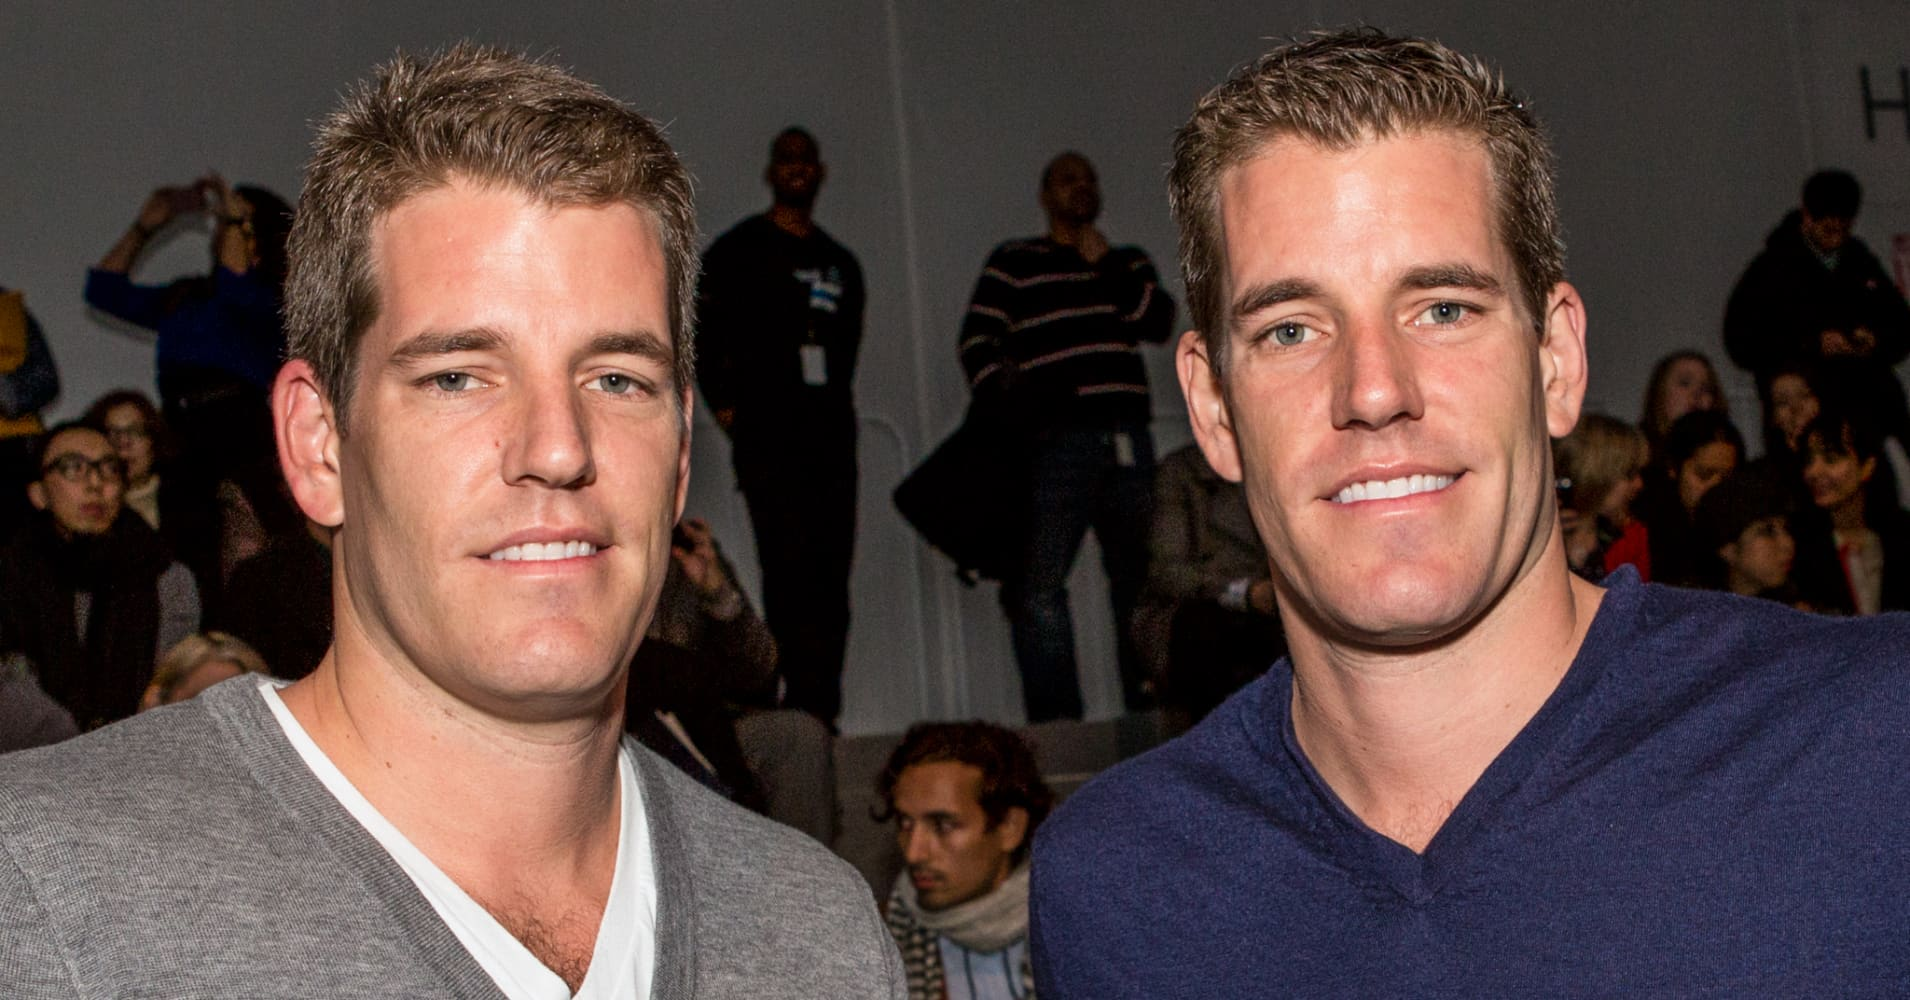 Never Mind Facebook; Winklevoss Twins Rule In Digital Money